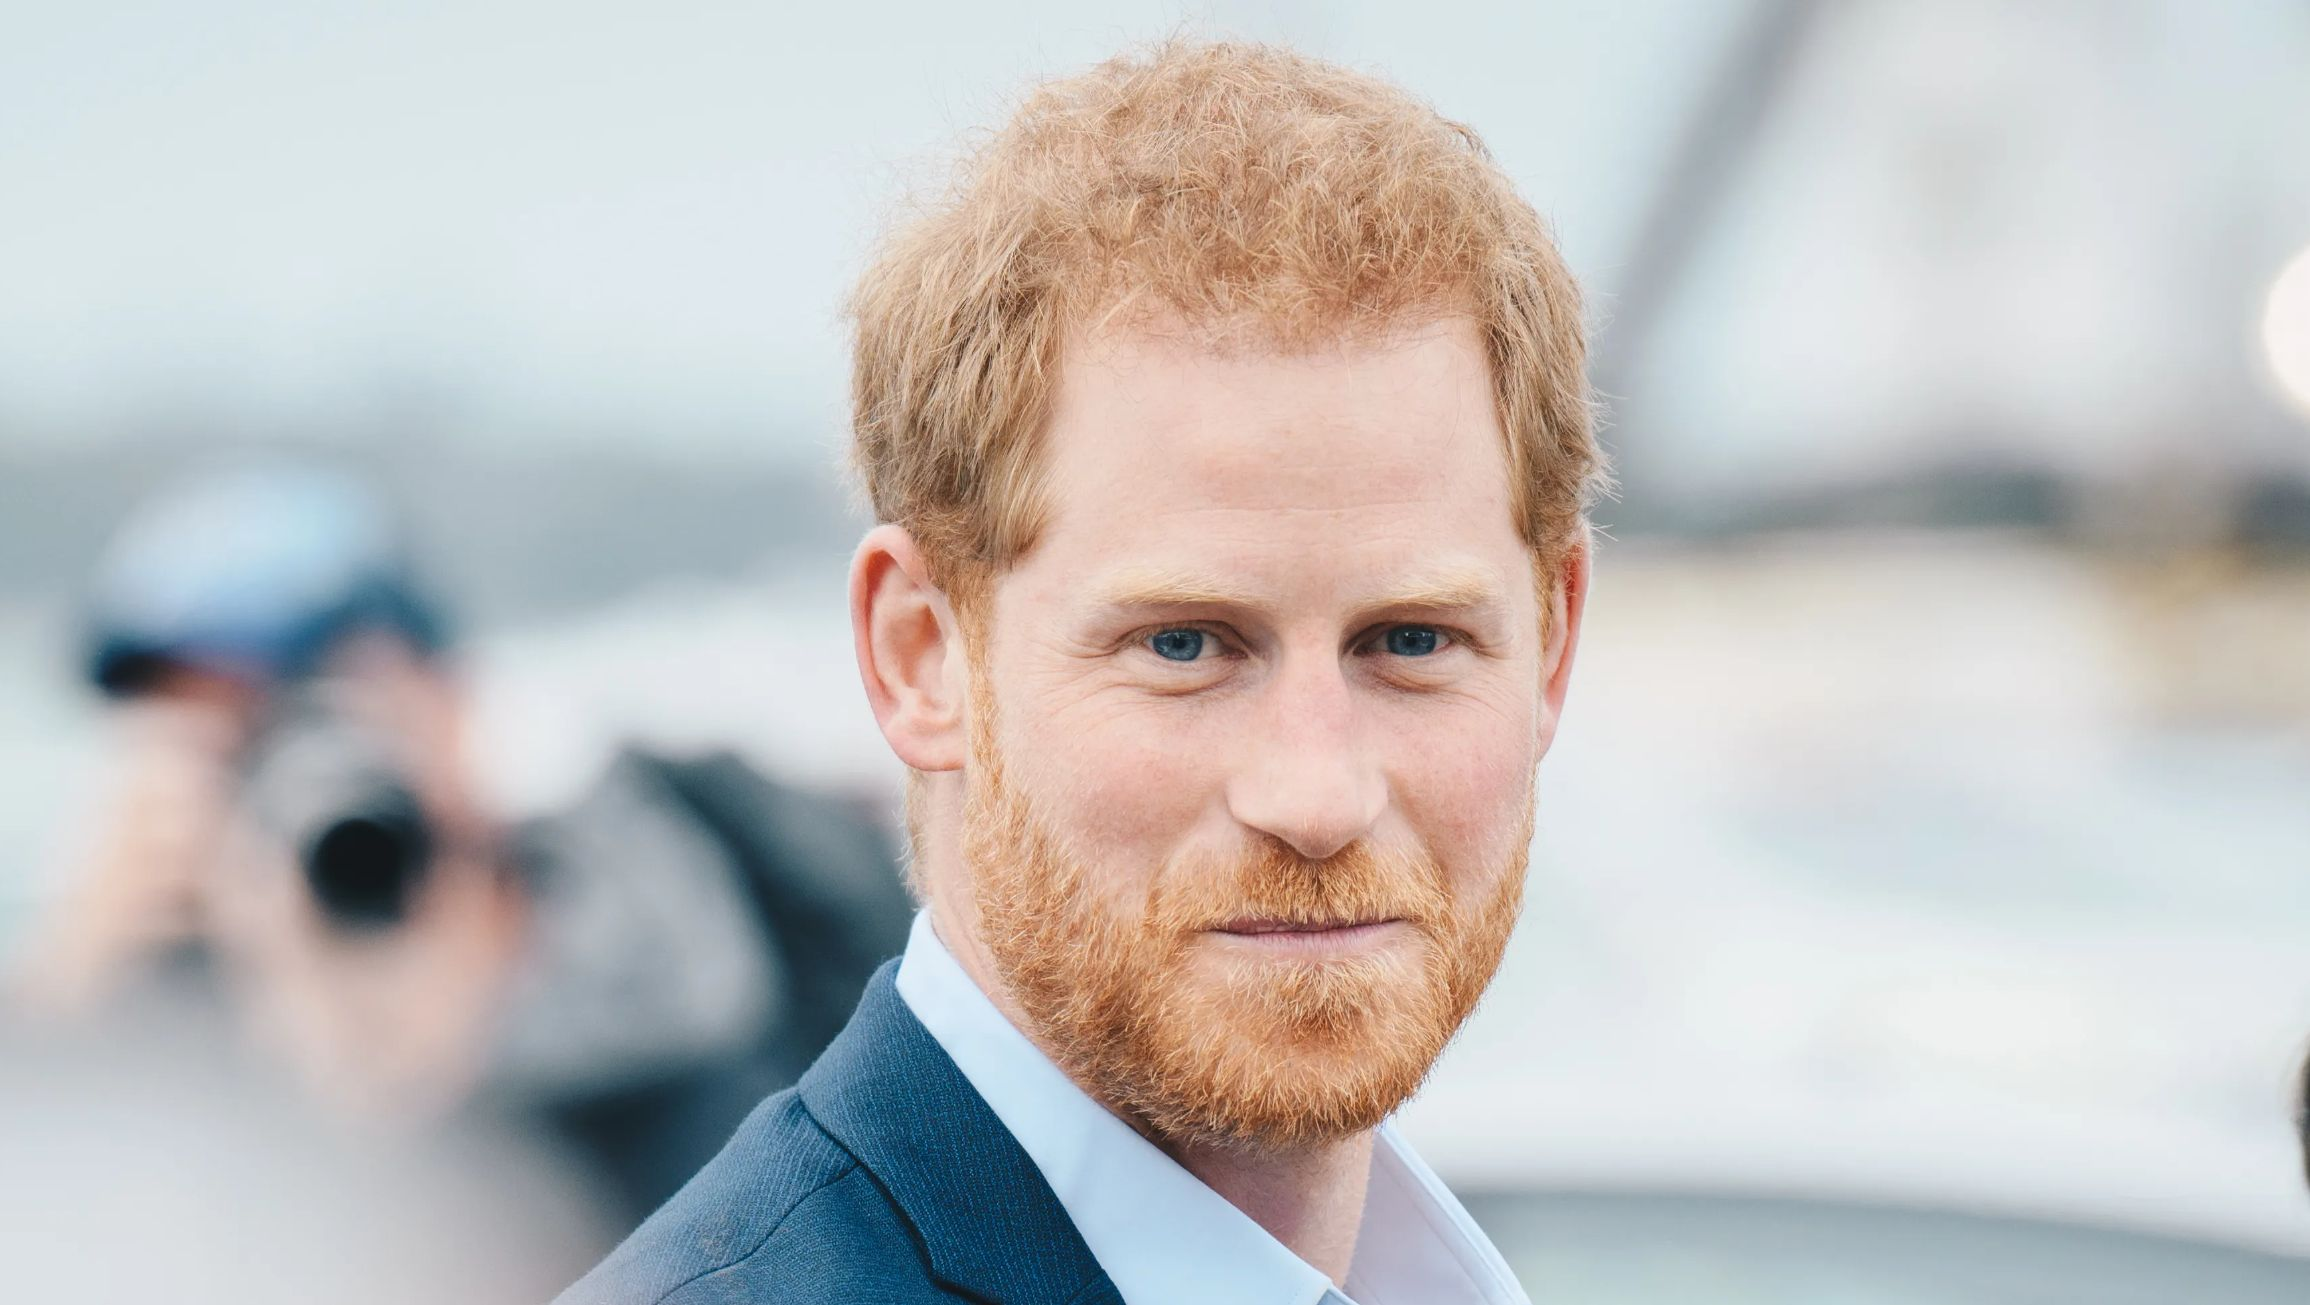 Prince Harry smiling at the camera.